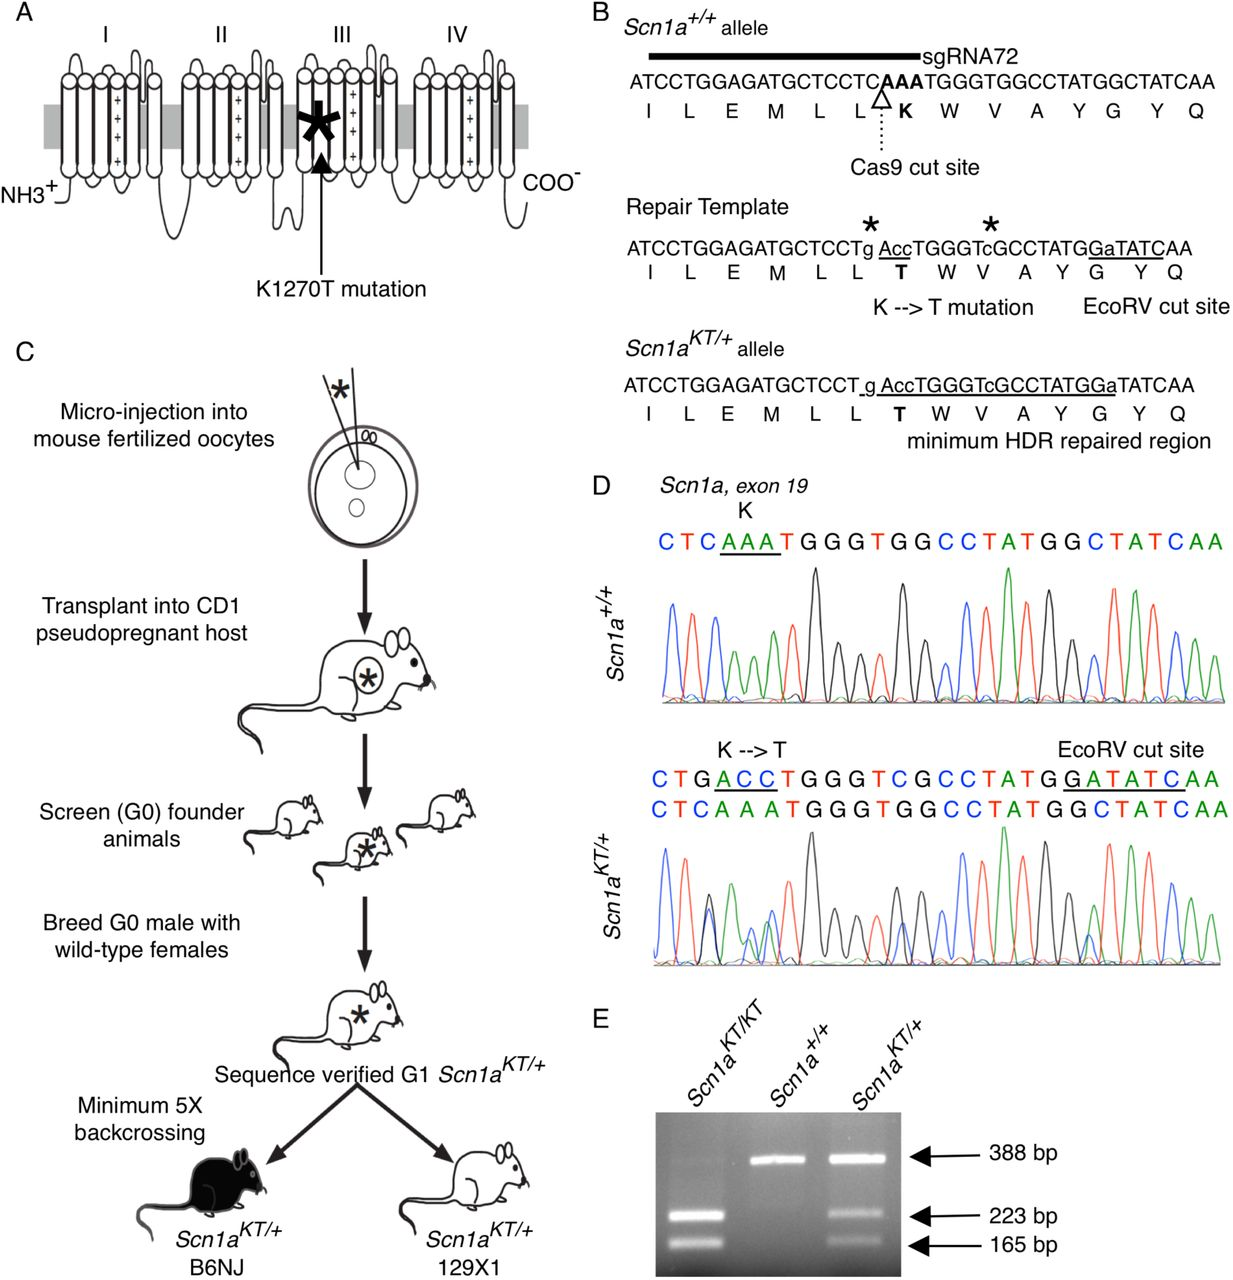 Generation of Scn1a KT/+ mouse using CRISPR/Cas9 technology. (A) GEFS+ causing K1270T mutation (asterisk) is located in S2 transmembrane segment of domain III of the alpha subunit of Nav1.1 ion channel encoded by the human SCN1A gene. (B) Location of the guide RNA relative to the Cas9 cut site and the locus of the K1259T mutation in the mouse Scn1a gene and the Nav1.1 protein sequence. Repair template sequence with the base pair changes introducing the K-T mutation and the EcoRV cut site. All edited nucleotides are shown in lowercase letters and the homology-dependent repair region is represented by underlined letters. Two additional silent mutations (asterisks) were added to prevent re-cutting by Cas9 following HDR. (C) Outline of the steps followed to generate transgenic K1270T mouse colonies in B6NJ and 129×1 genetic backgrounds via CRISPR/Cas9 gene editing. (D) DNA sequence comparison between a wild-type ( Scn1a +/+ ) and a heterozygous ( Scn1a KT/+ ) mouse showing missense K-T mutation and another silent mutation that results in an EcoRV cut site. (E) A representative agarose gel shows PCR amplified DNA bands digested with EcoRV which distinguishes between mice homozygous for the mutant allele, Scn1a KT/KT (223 bp and 165 bp), Scn1a +/+ wild-type mice homozygous for the wild-type allele (388bp) and heterozygous Scn1a KT/+ mice carrying one copy each of wild-type (388 bp) and mutant (223 and 165 bp) alleles.